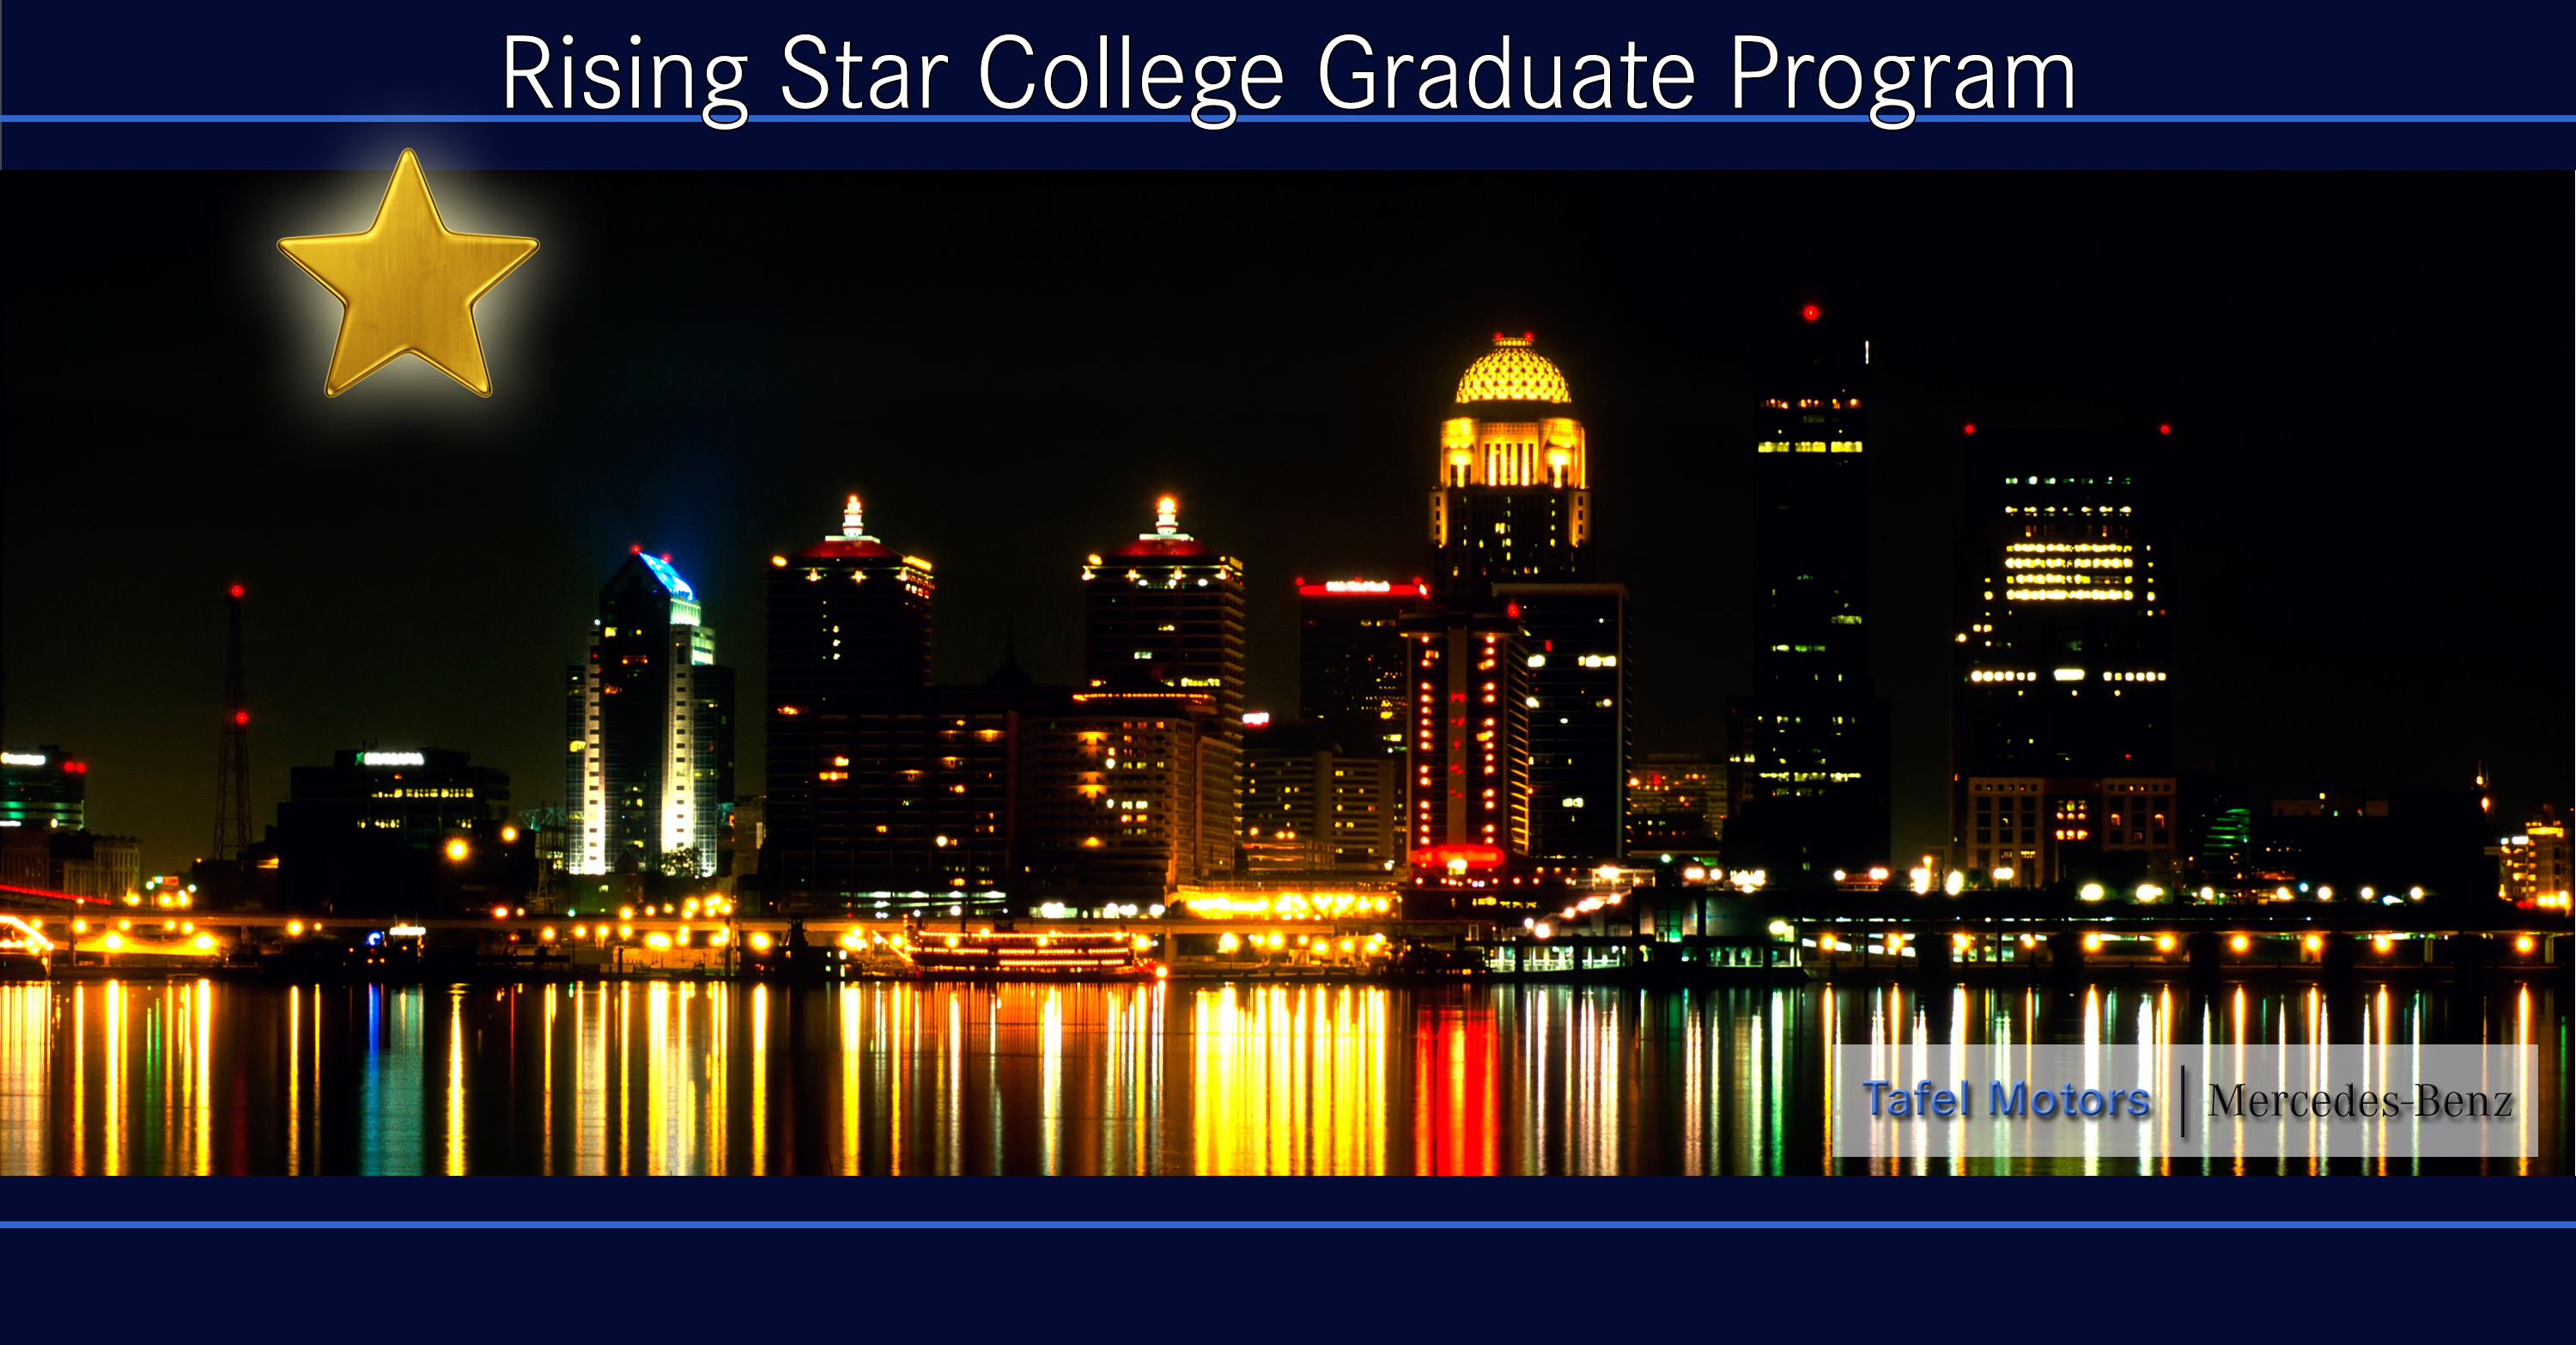 Rising Star College Graduate Program